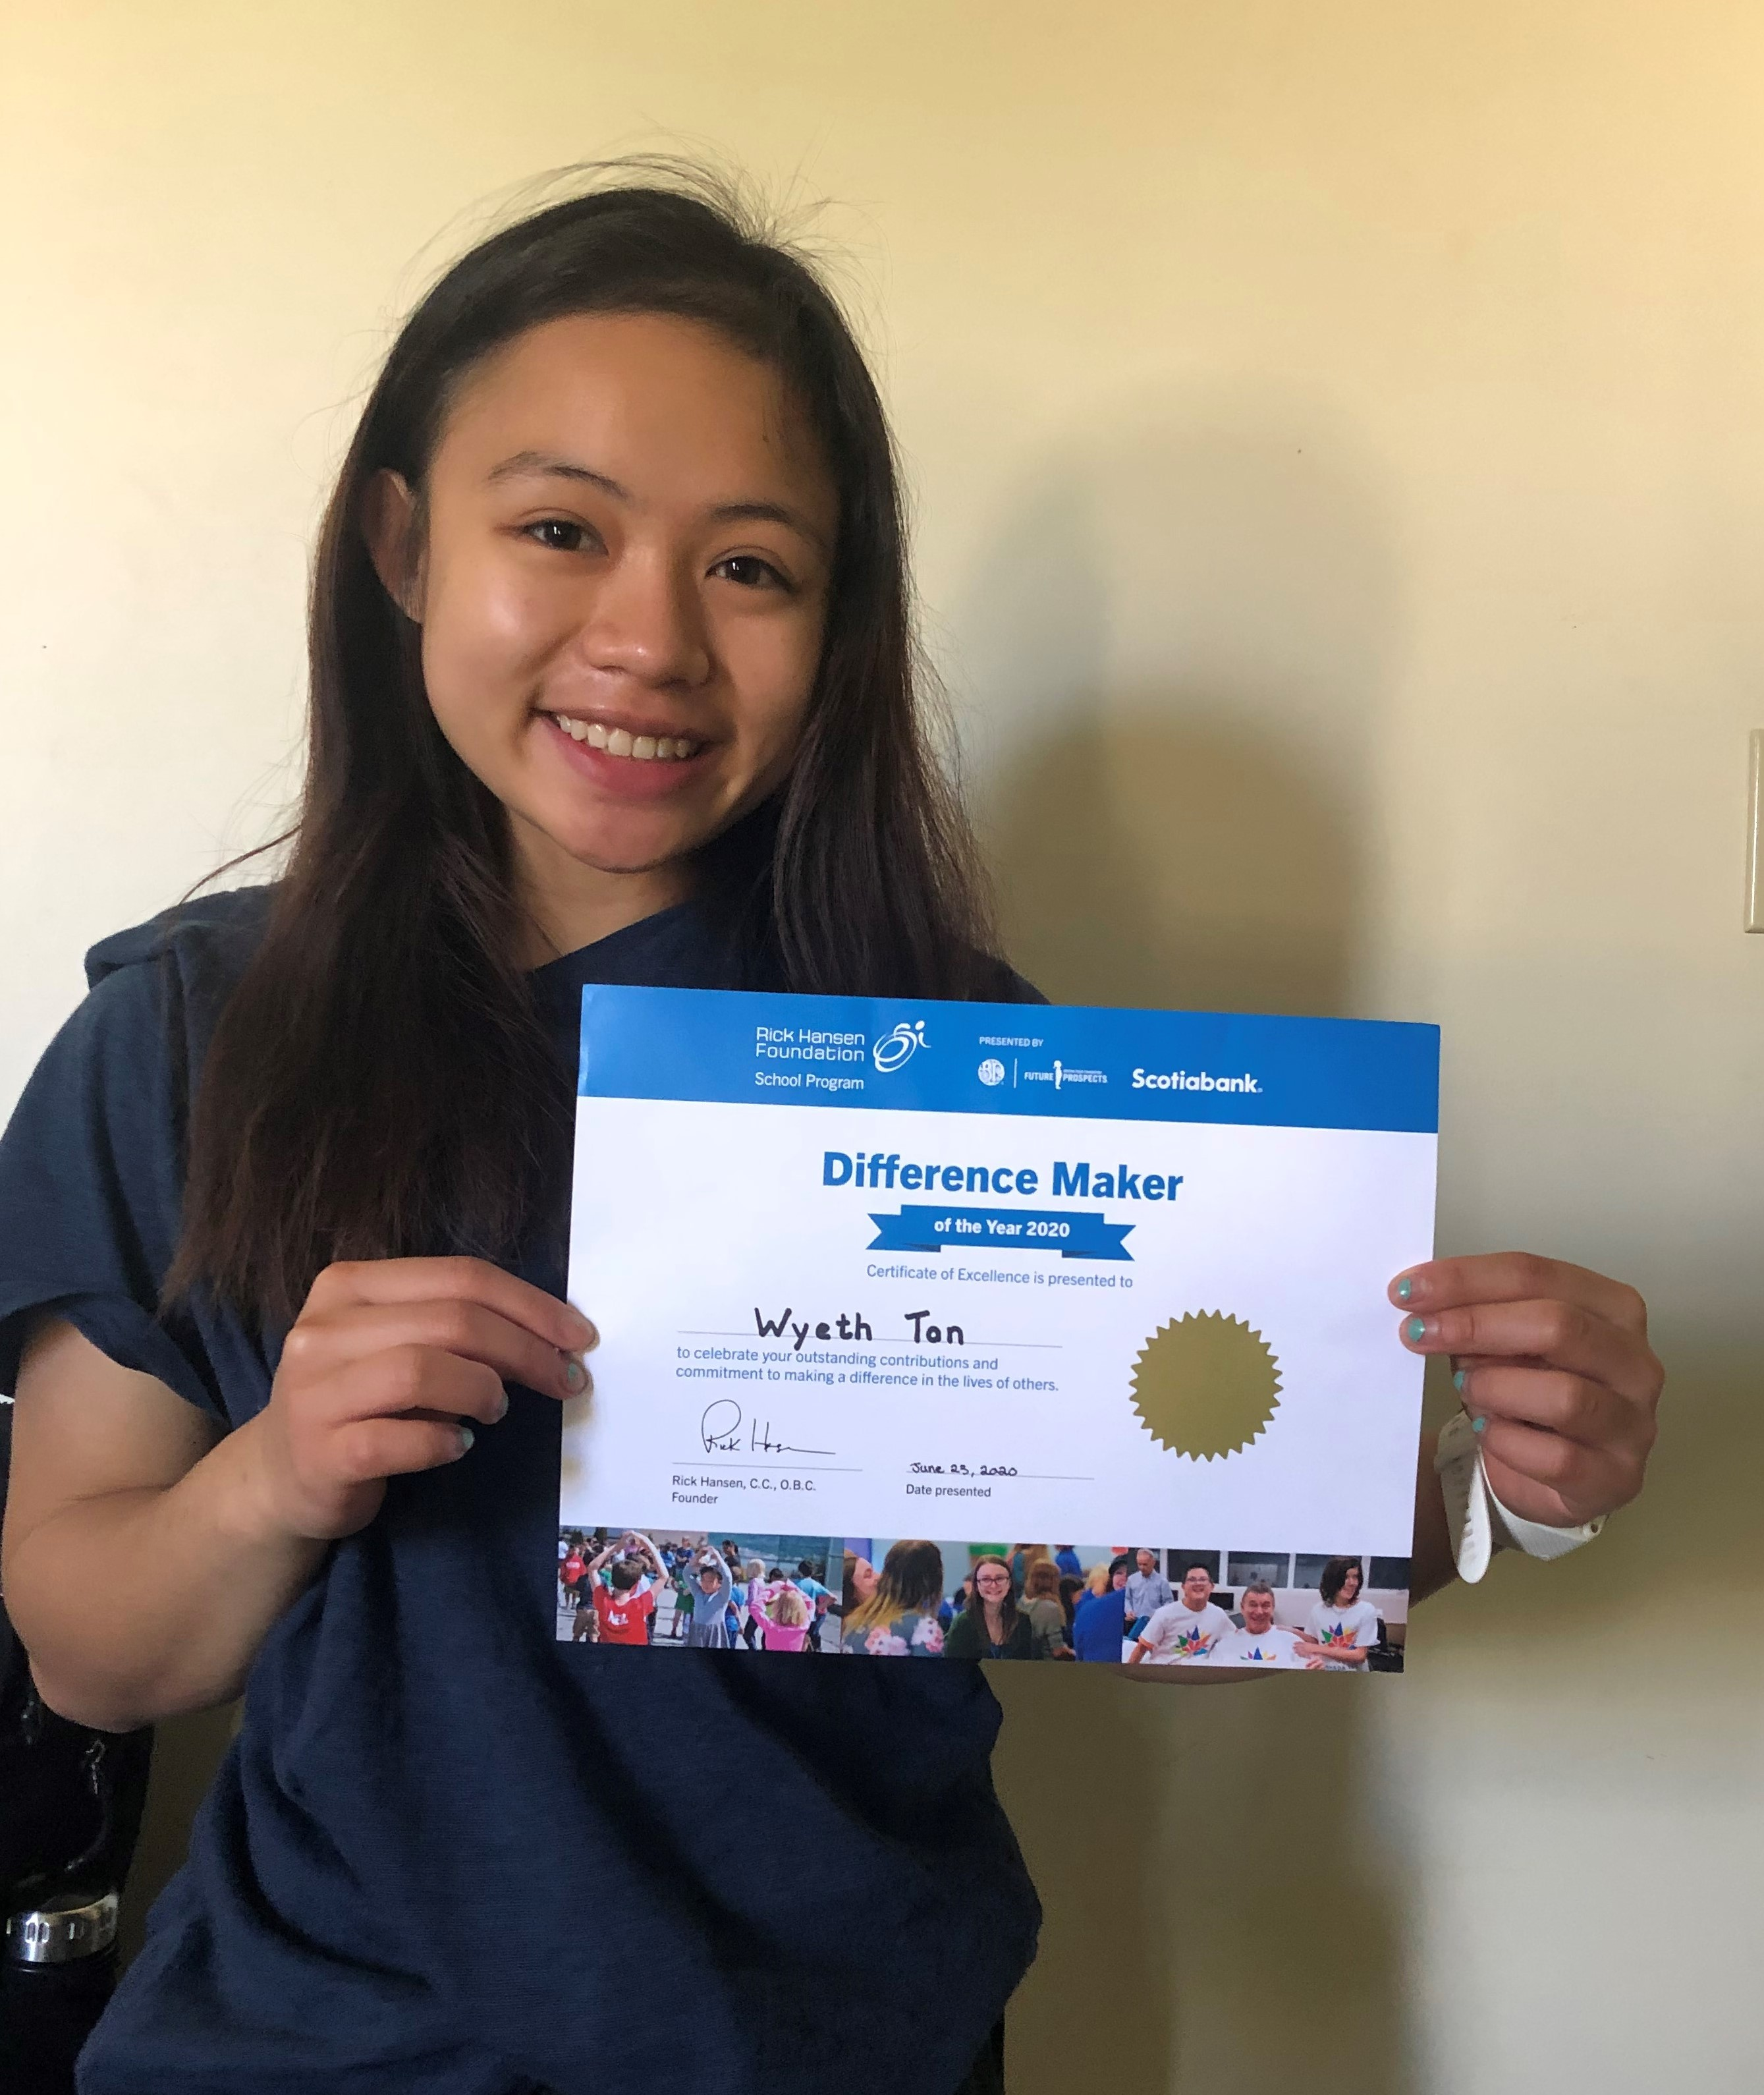 Wyeth holding her certificate, smiling